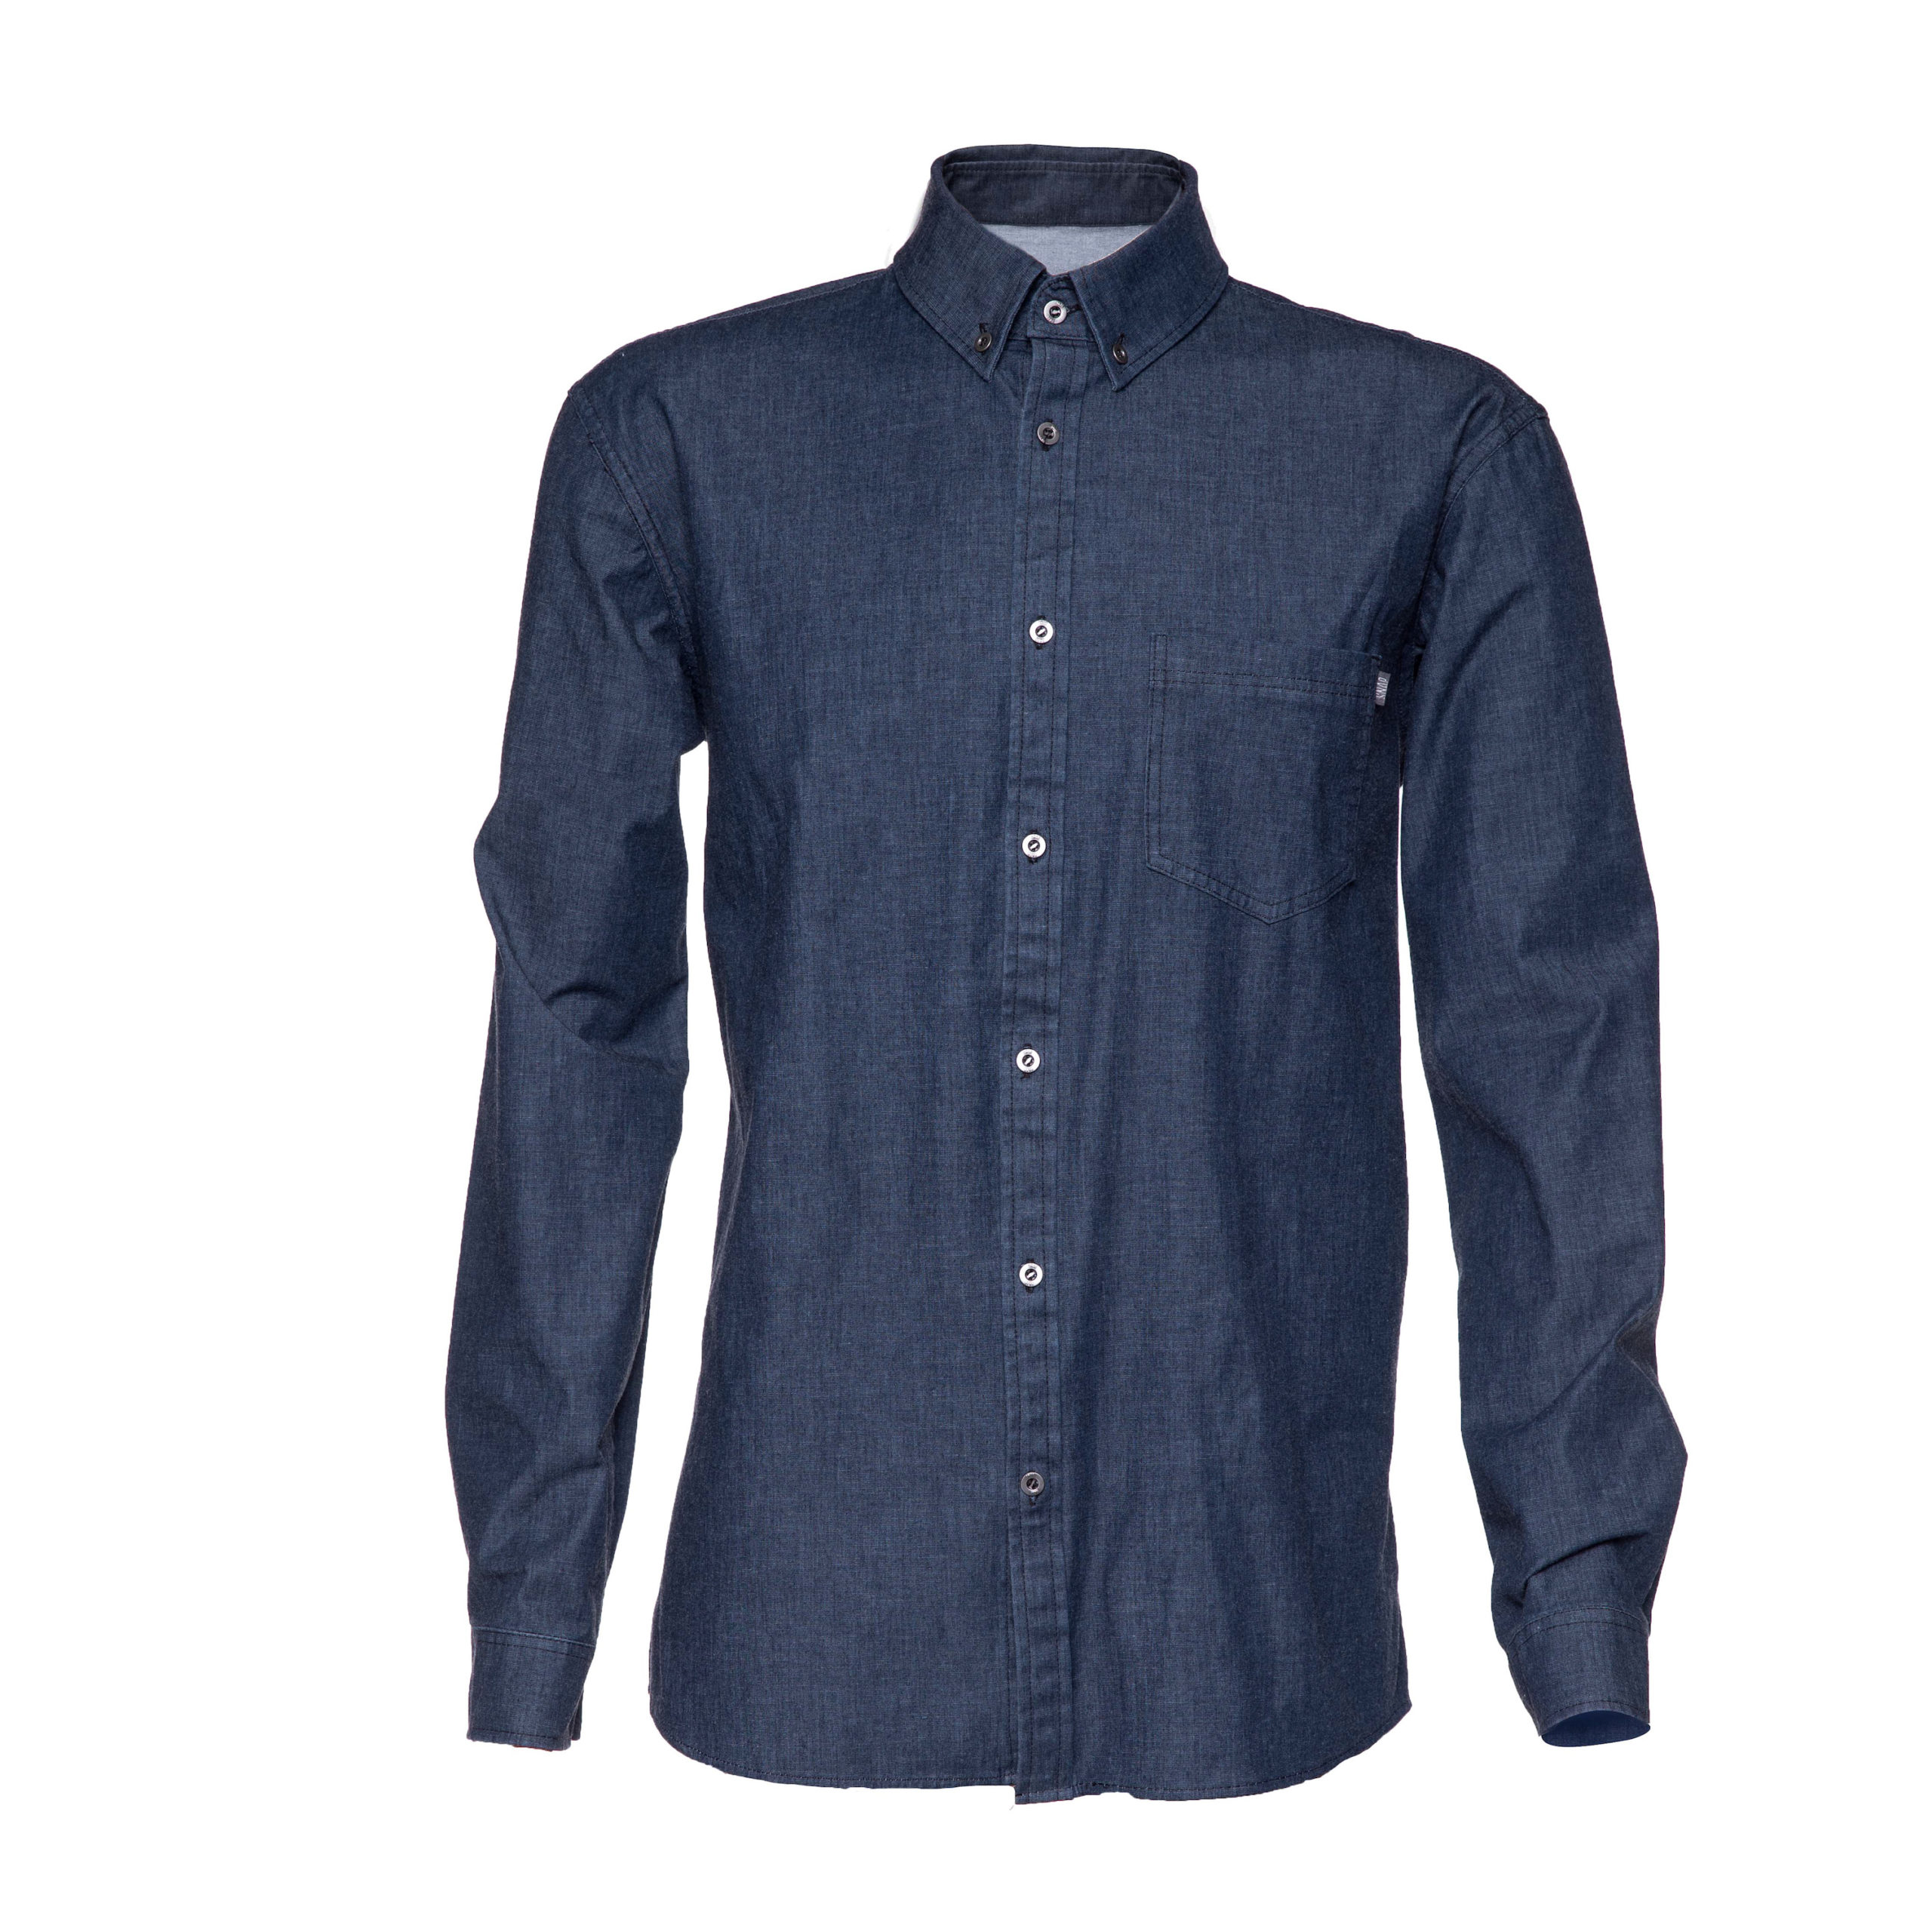 stretch denim shirt for man in organic cotton front